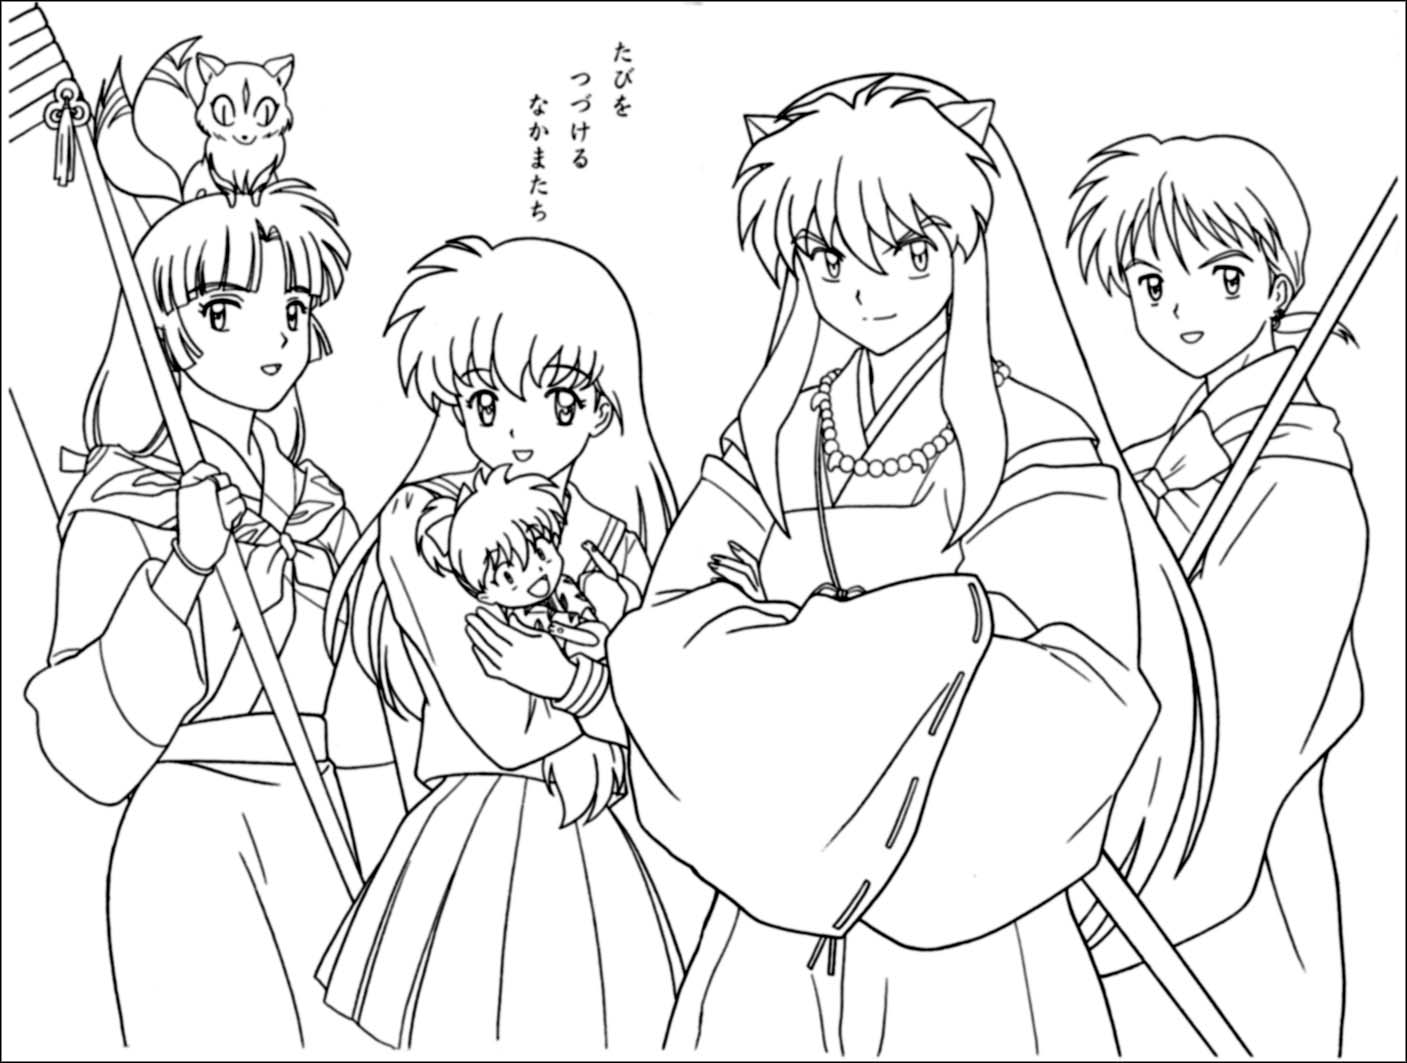 coloring anime pictures top 20 free printable anime coloring pages online anime pictures coloring